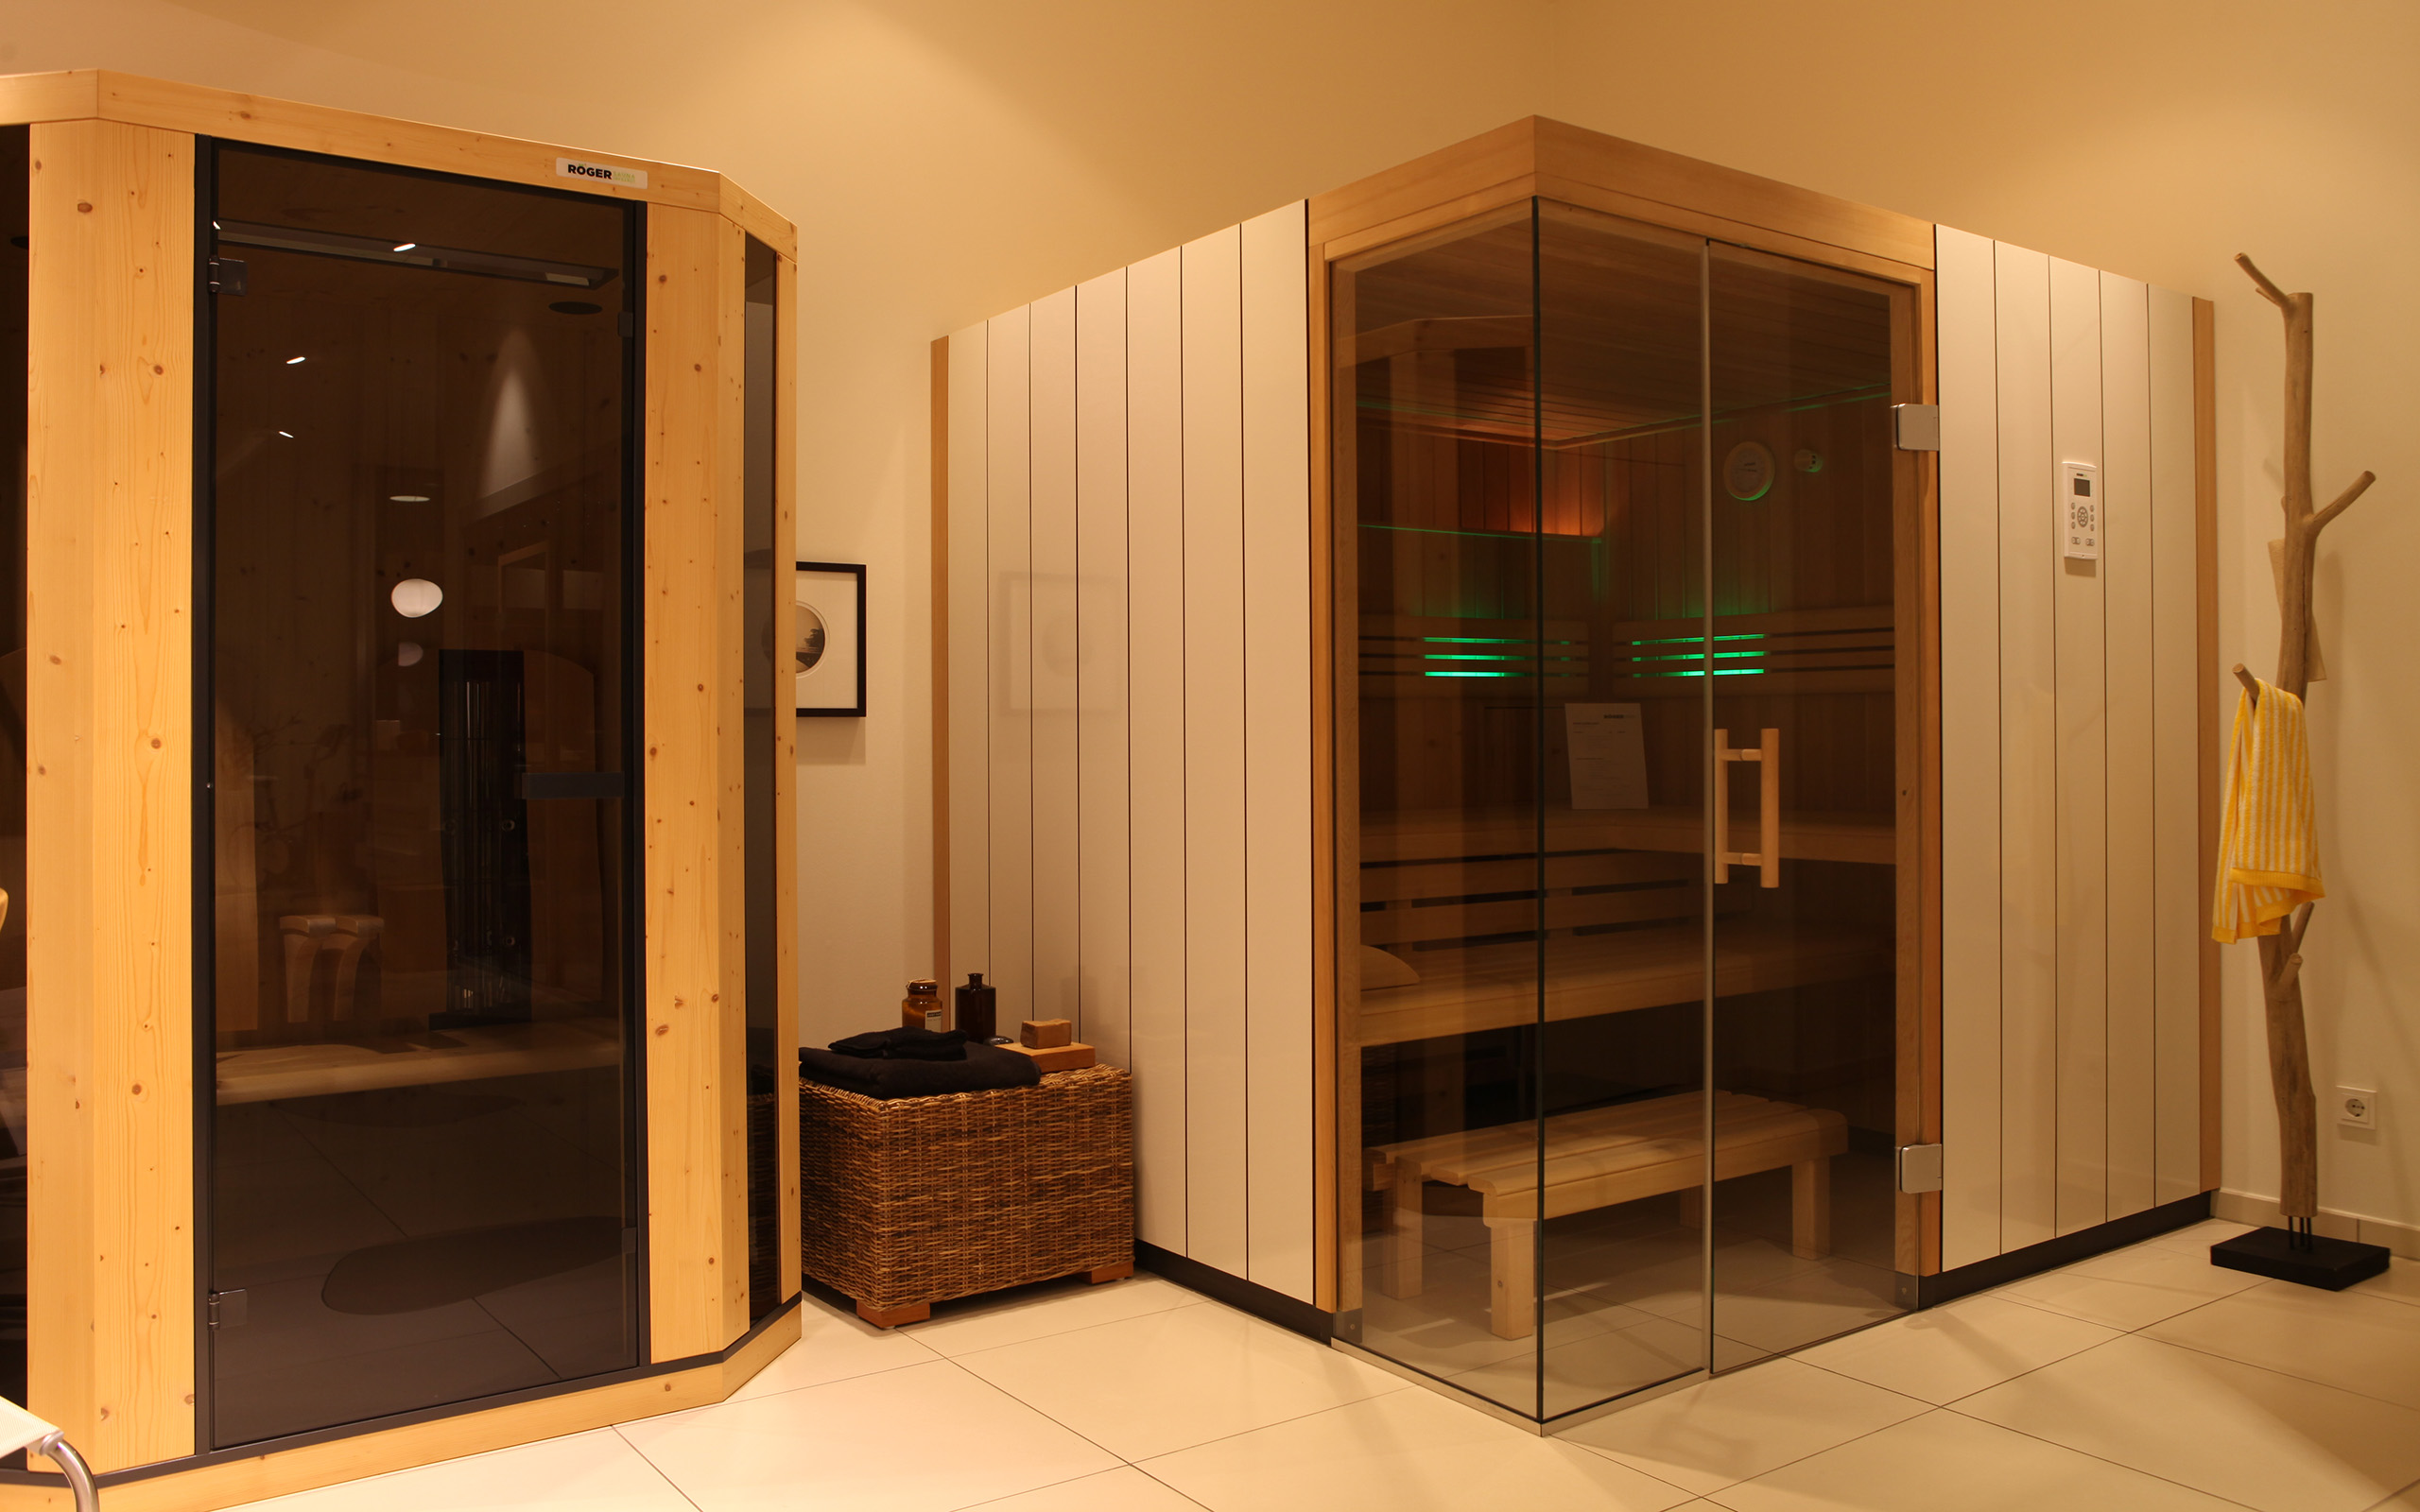 sauna ausstellung in saarbr cken. Black Bedroom Furniture Sets. Home Design Ideas